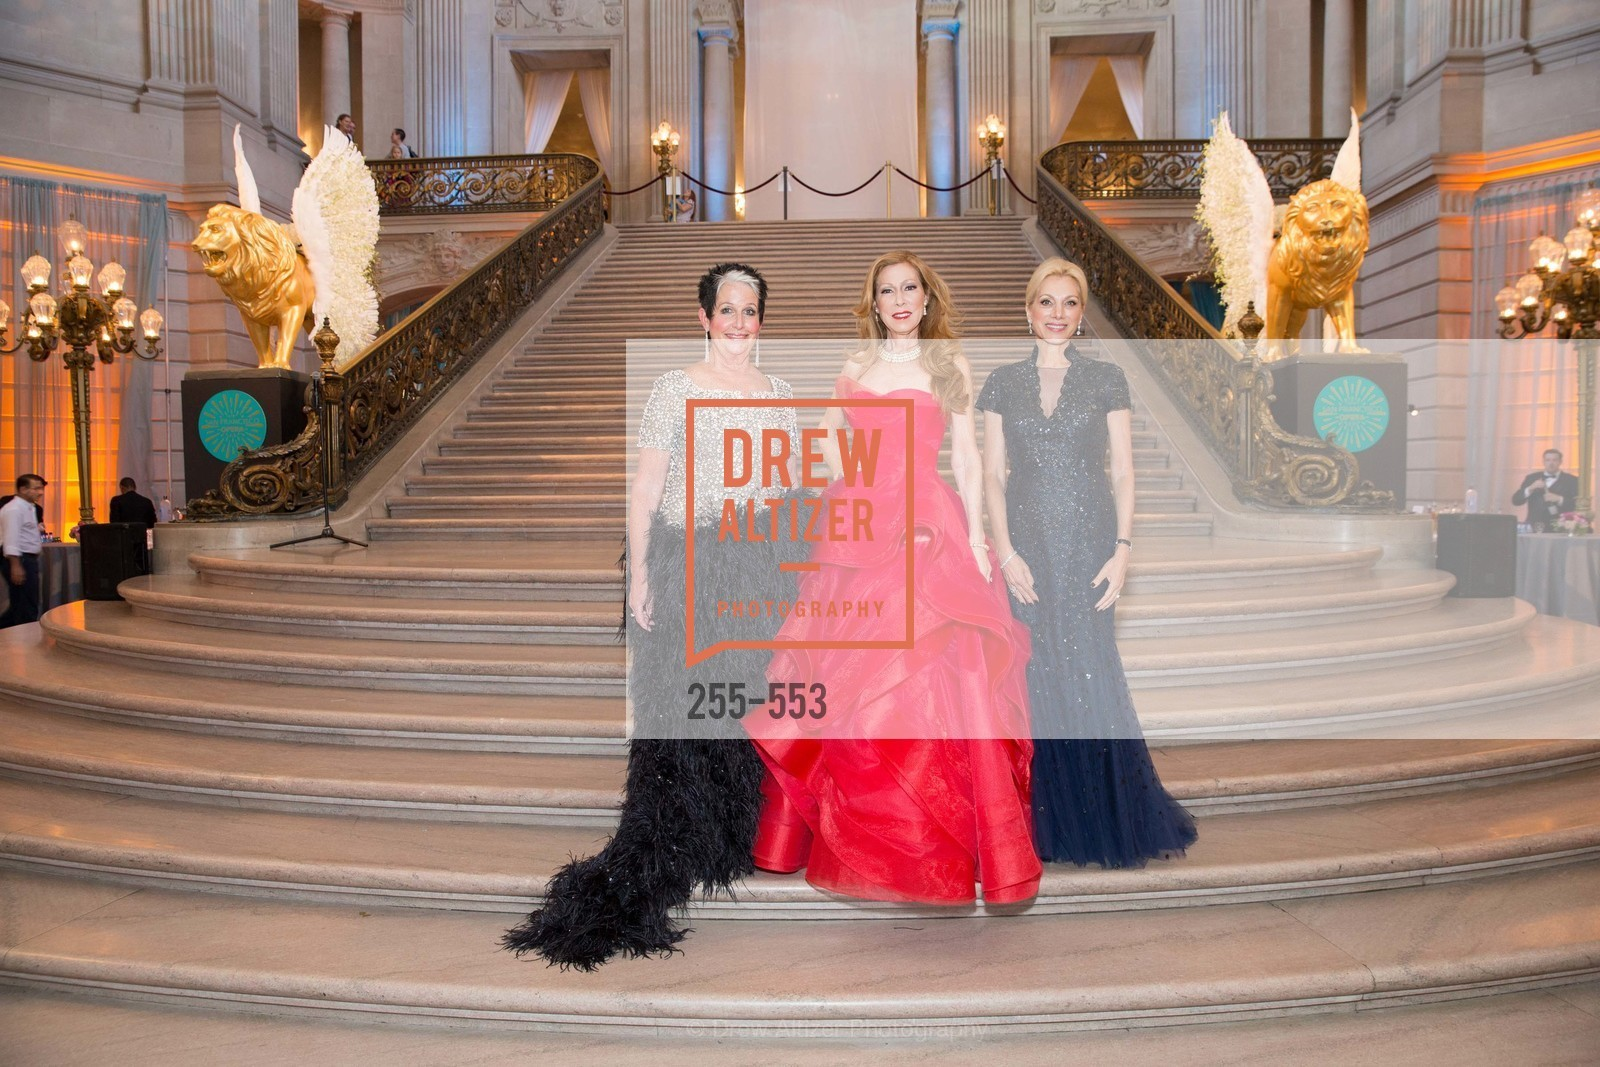 Karen Kubin, Teresa Medearis, Cynthia Schreuder, SAN FRANCISCO OPERA'S 92nd Opera Ball 2014: PASSIONE, Opera House, September 5th, 2014,Drew Altizer, Drew Altizer Photography, full-service event agency, private events, San Francisco photographer, photographer California